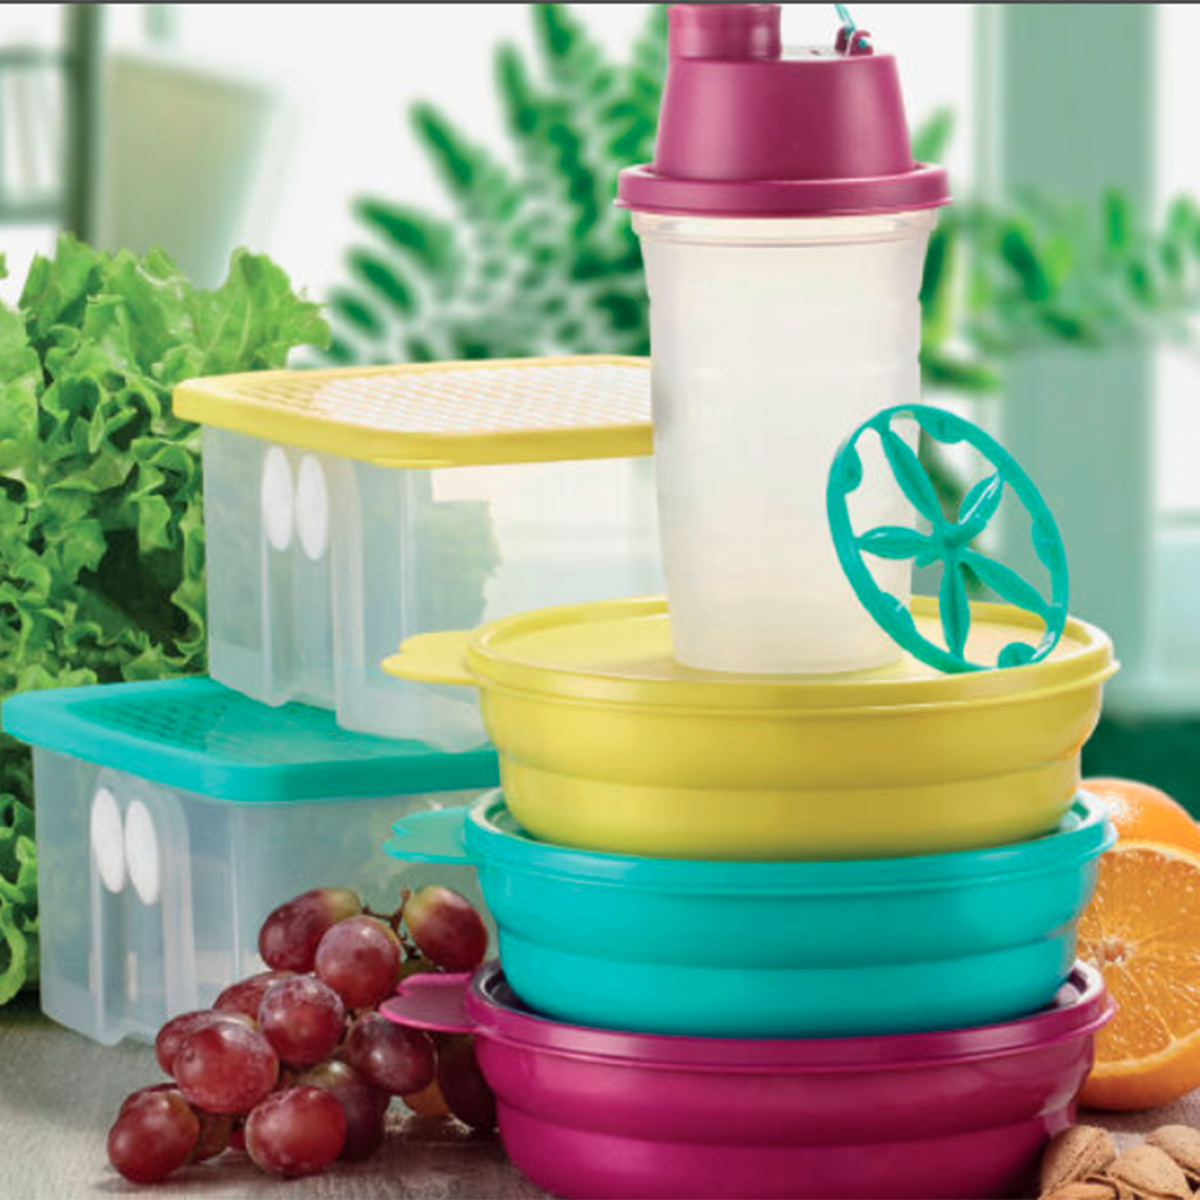 Find out more about Tupperware